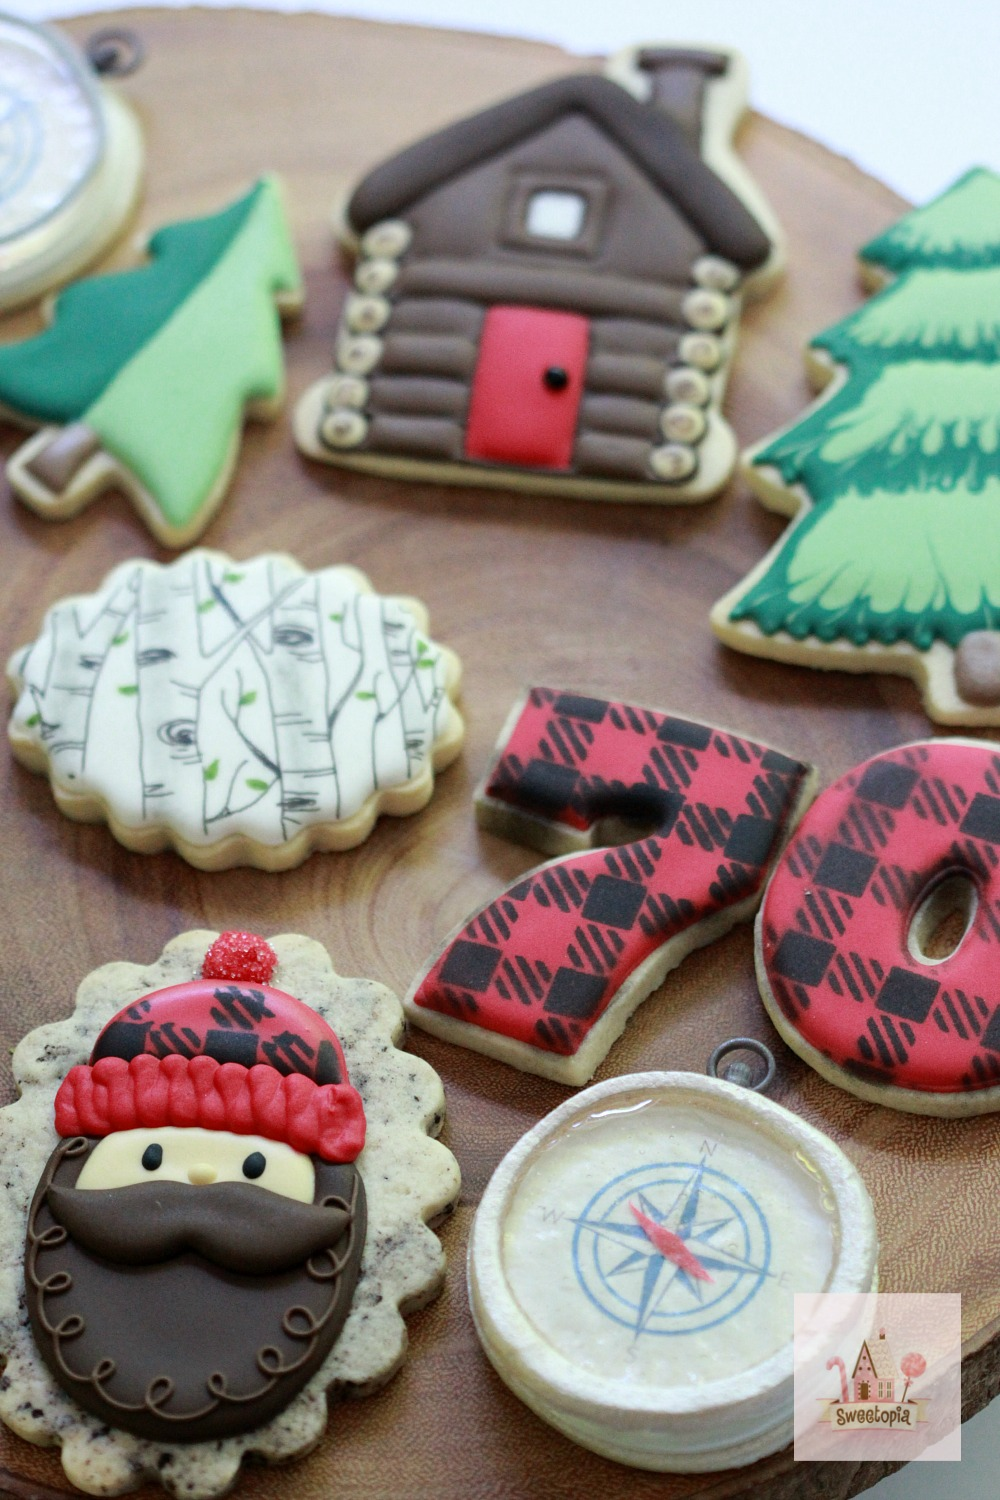 How to Decorate Camping Cookies with Royal Icing Video Tutorial Sweetopia